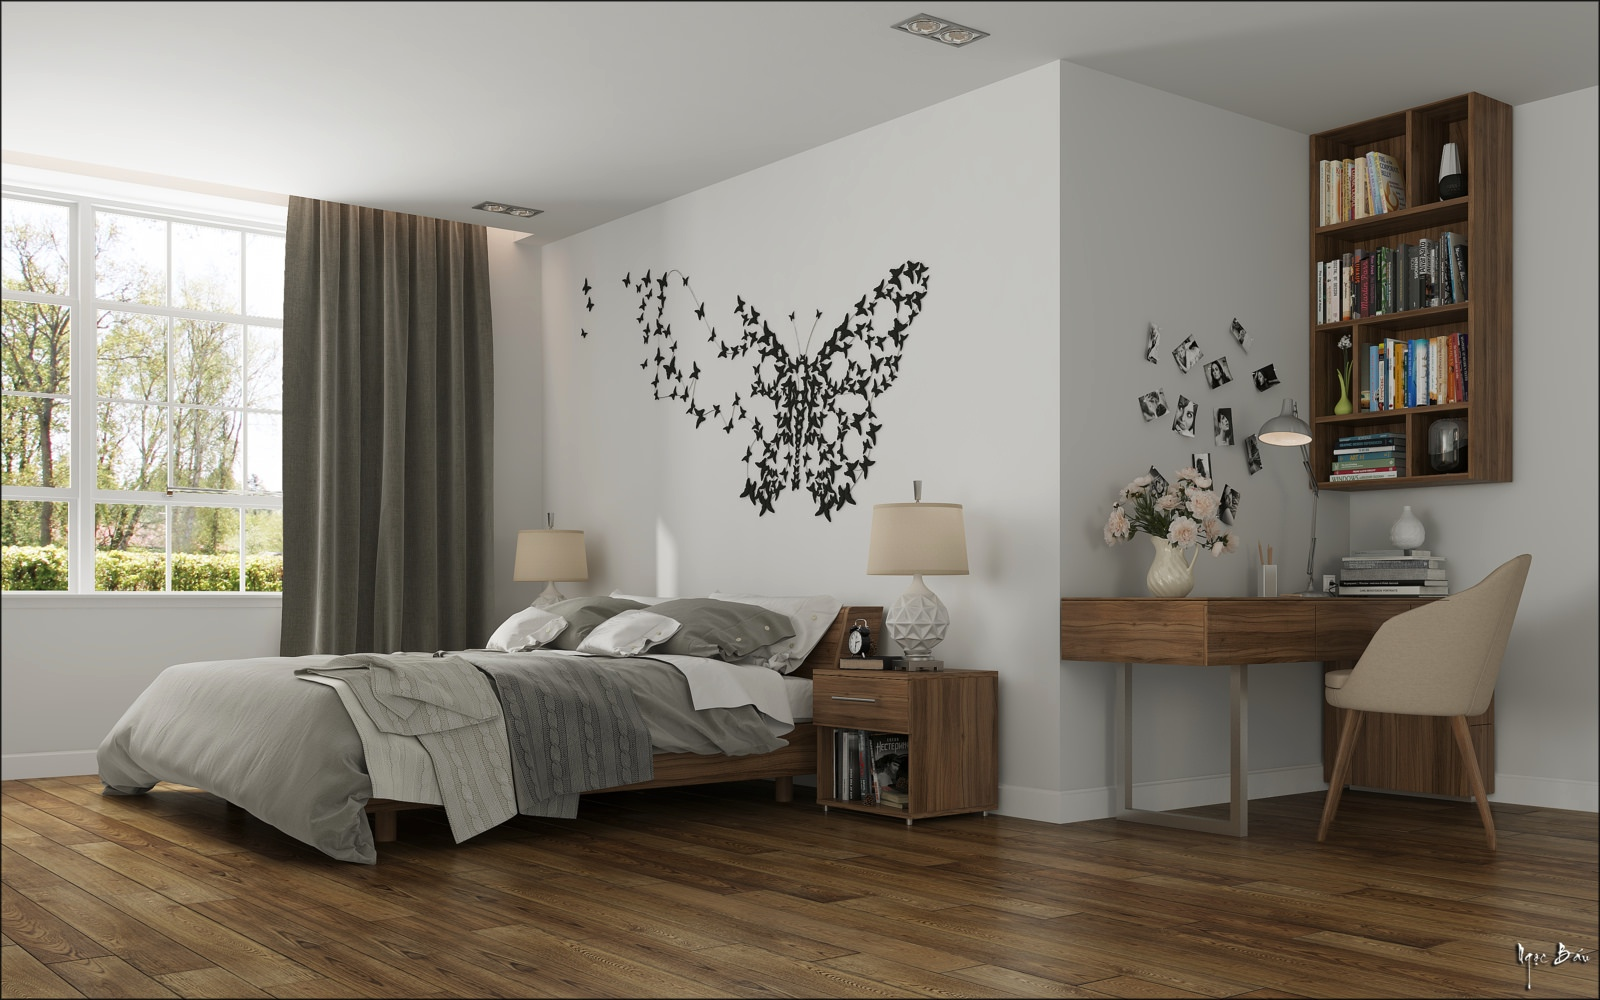 Bedroom butterfly wall art interior design ideas - Exemple de decoration maison ...